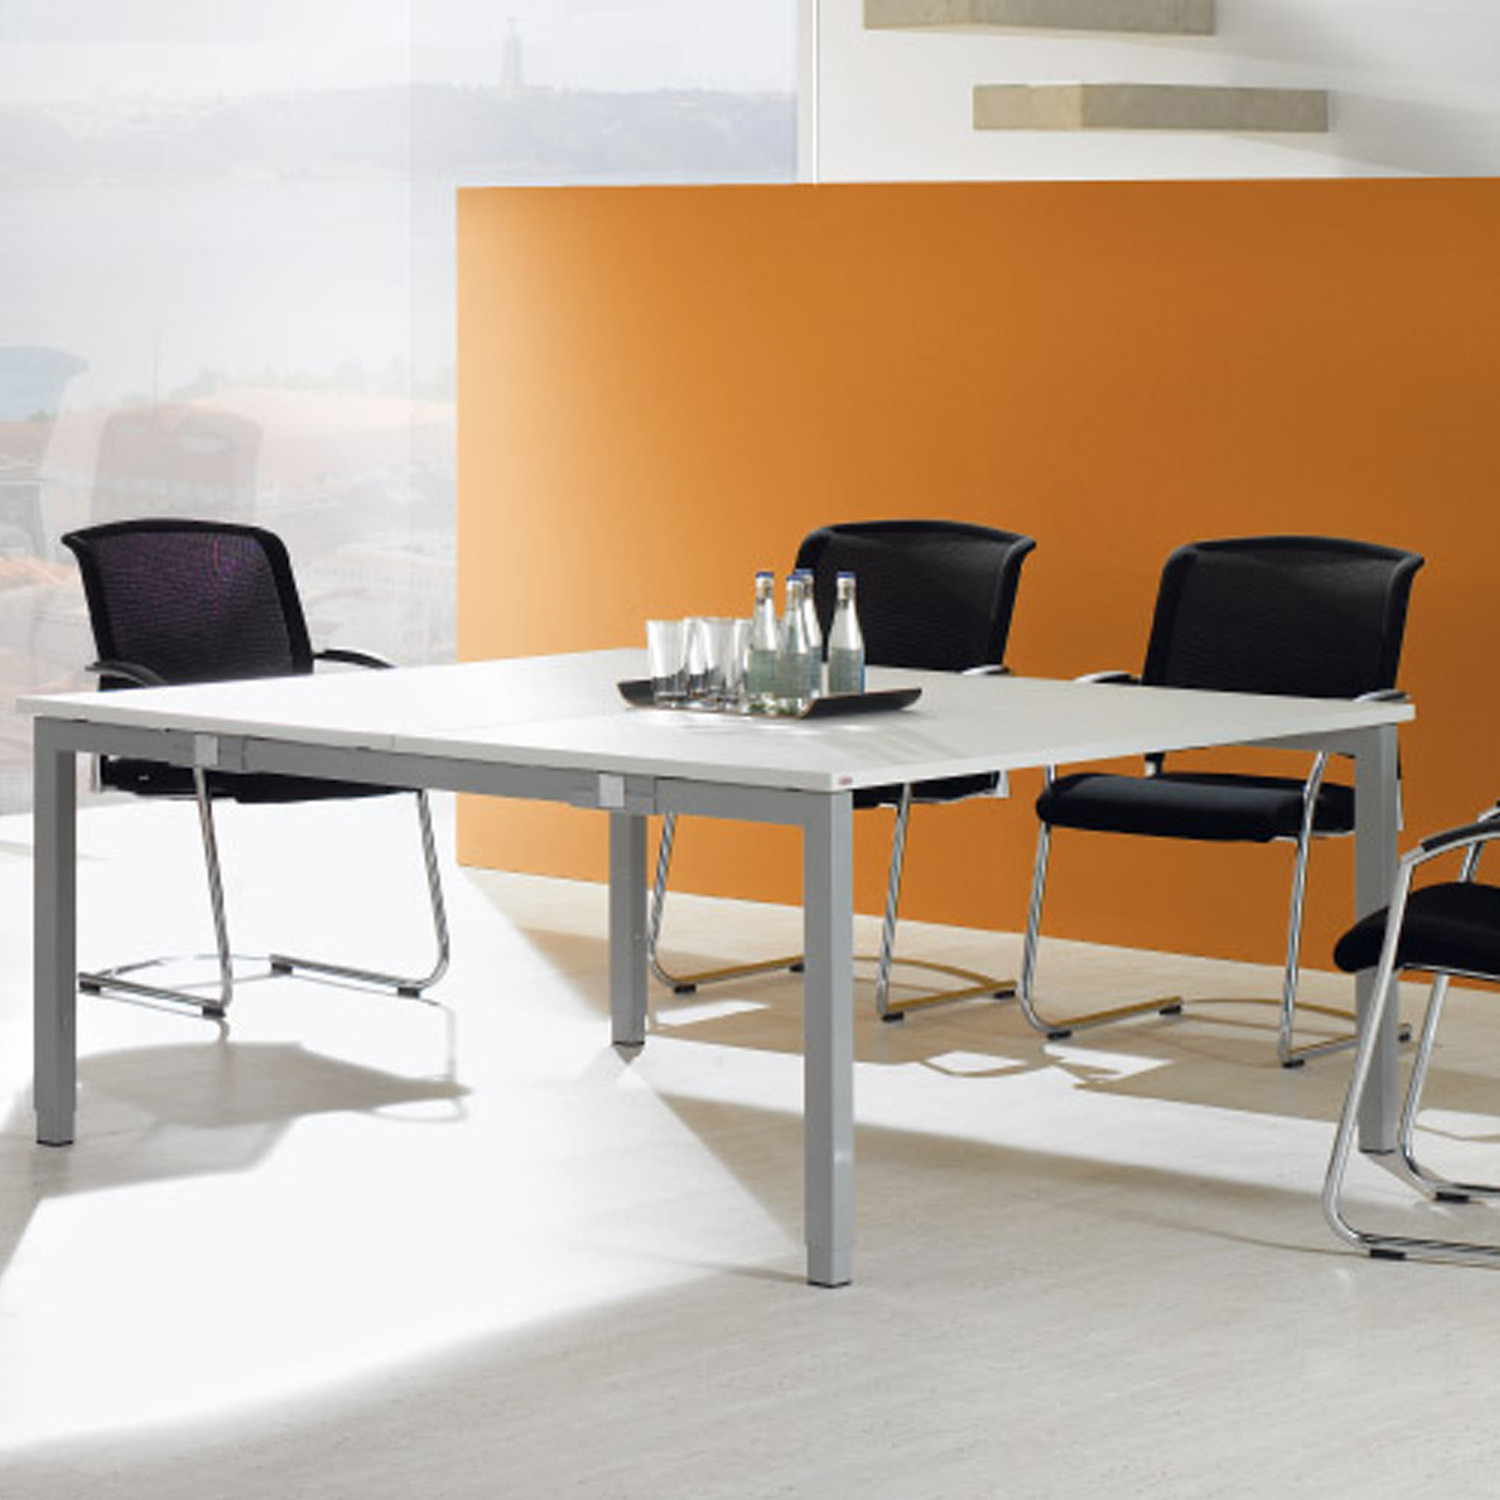 TriASS Meeting Tables by Assmann